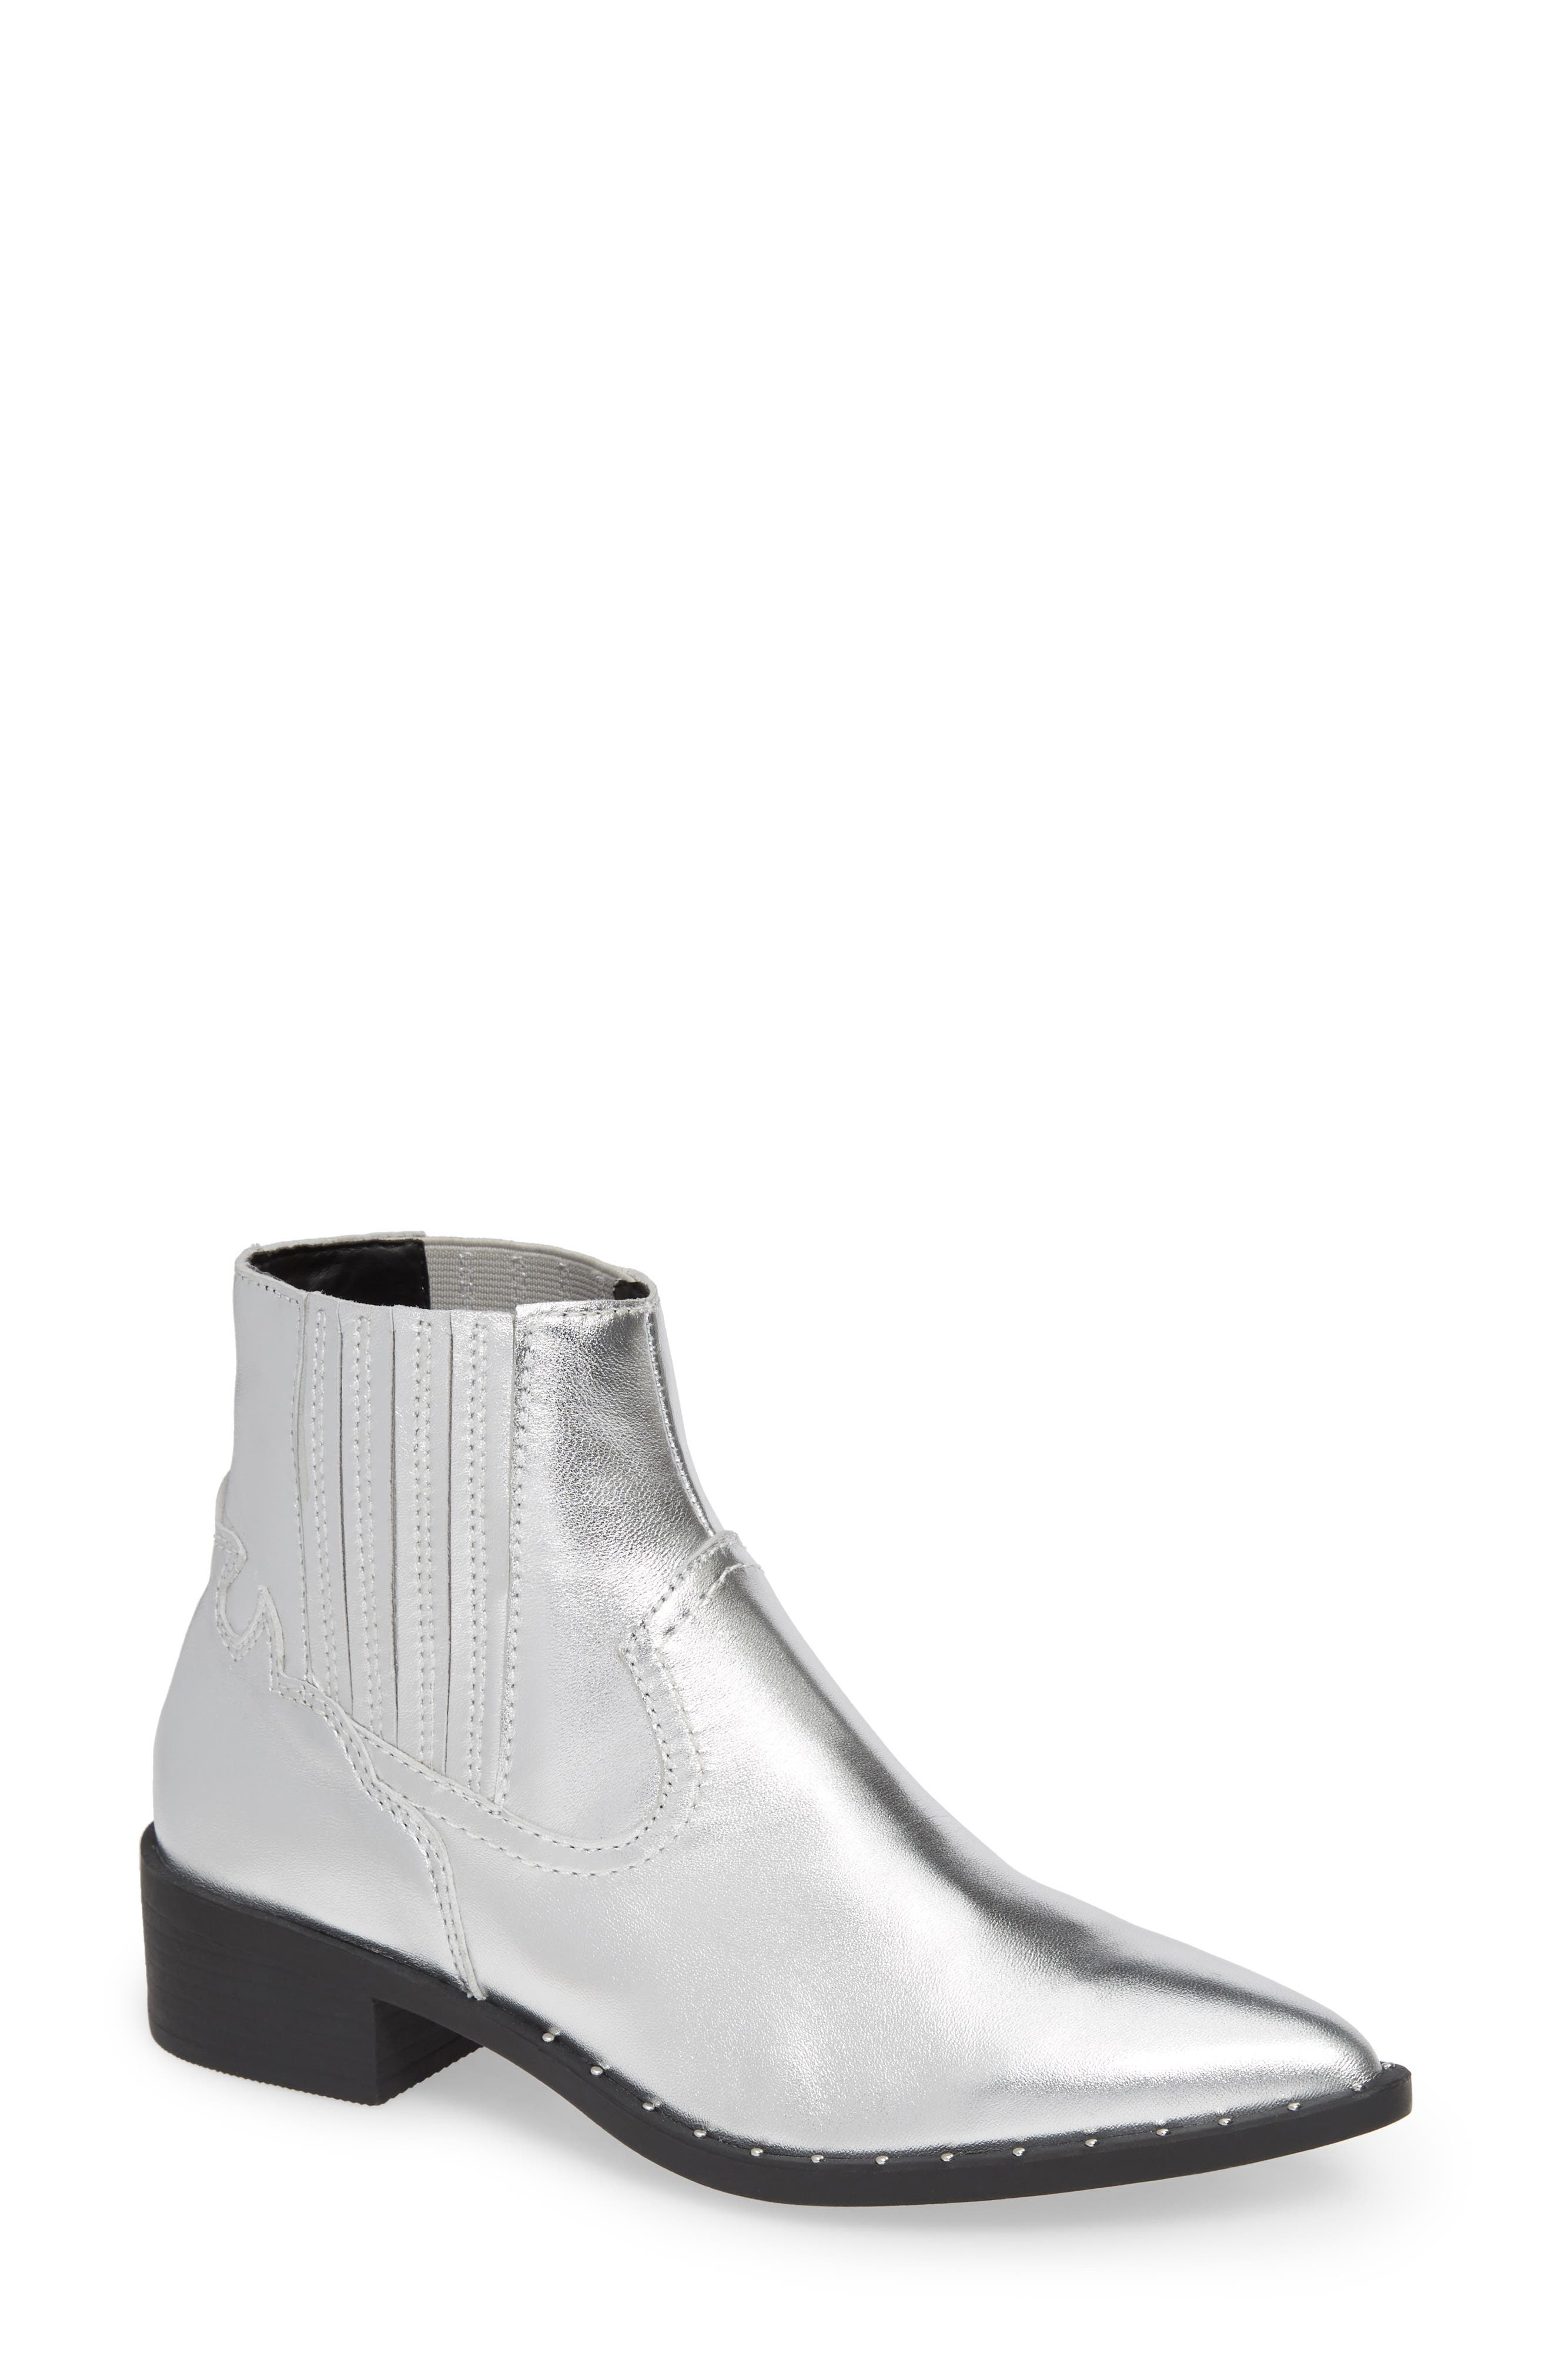 Juke Bootie,                         Main,                         color, SILVER LEATHER